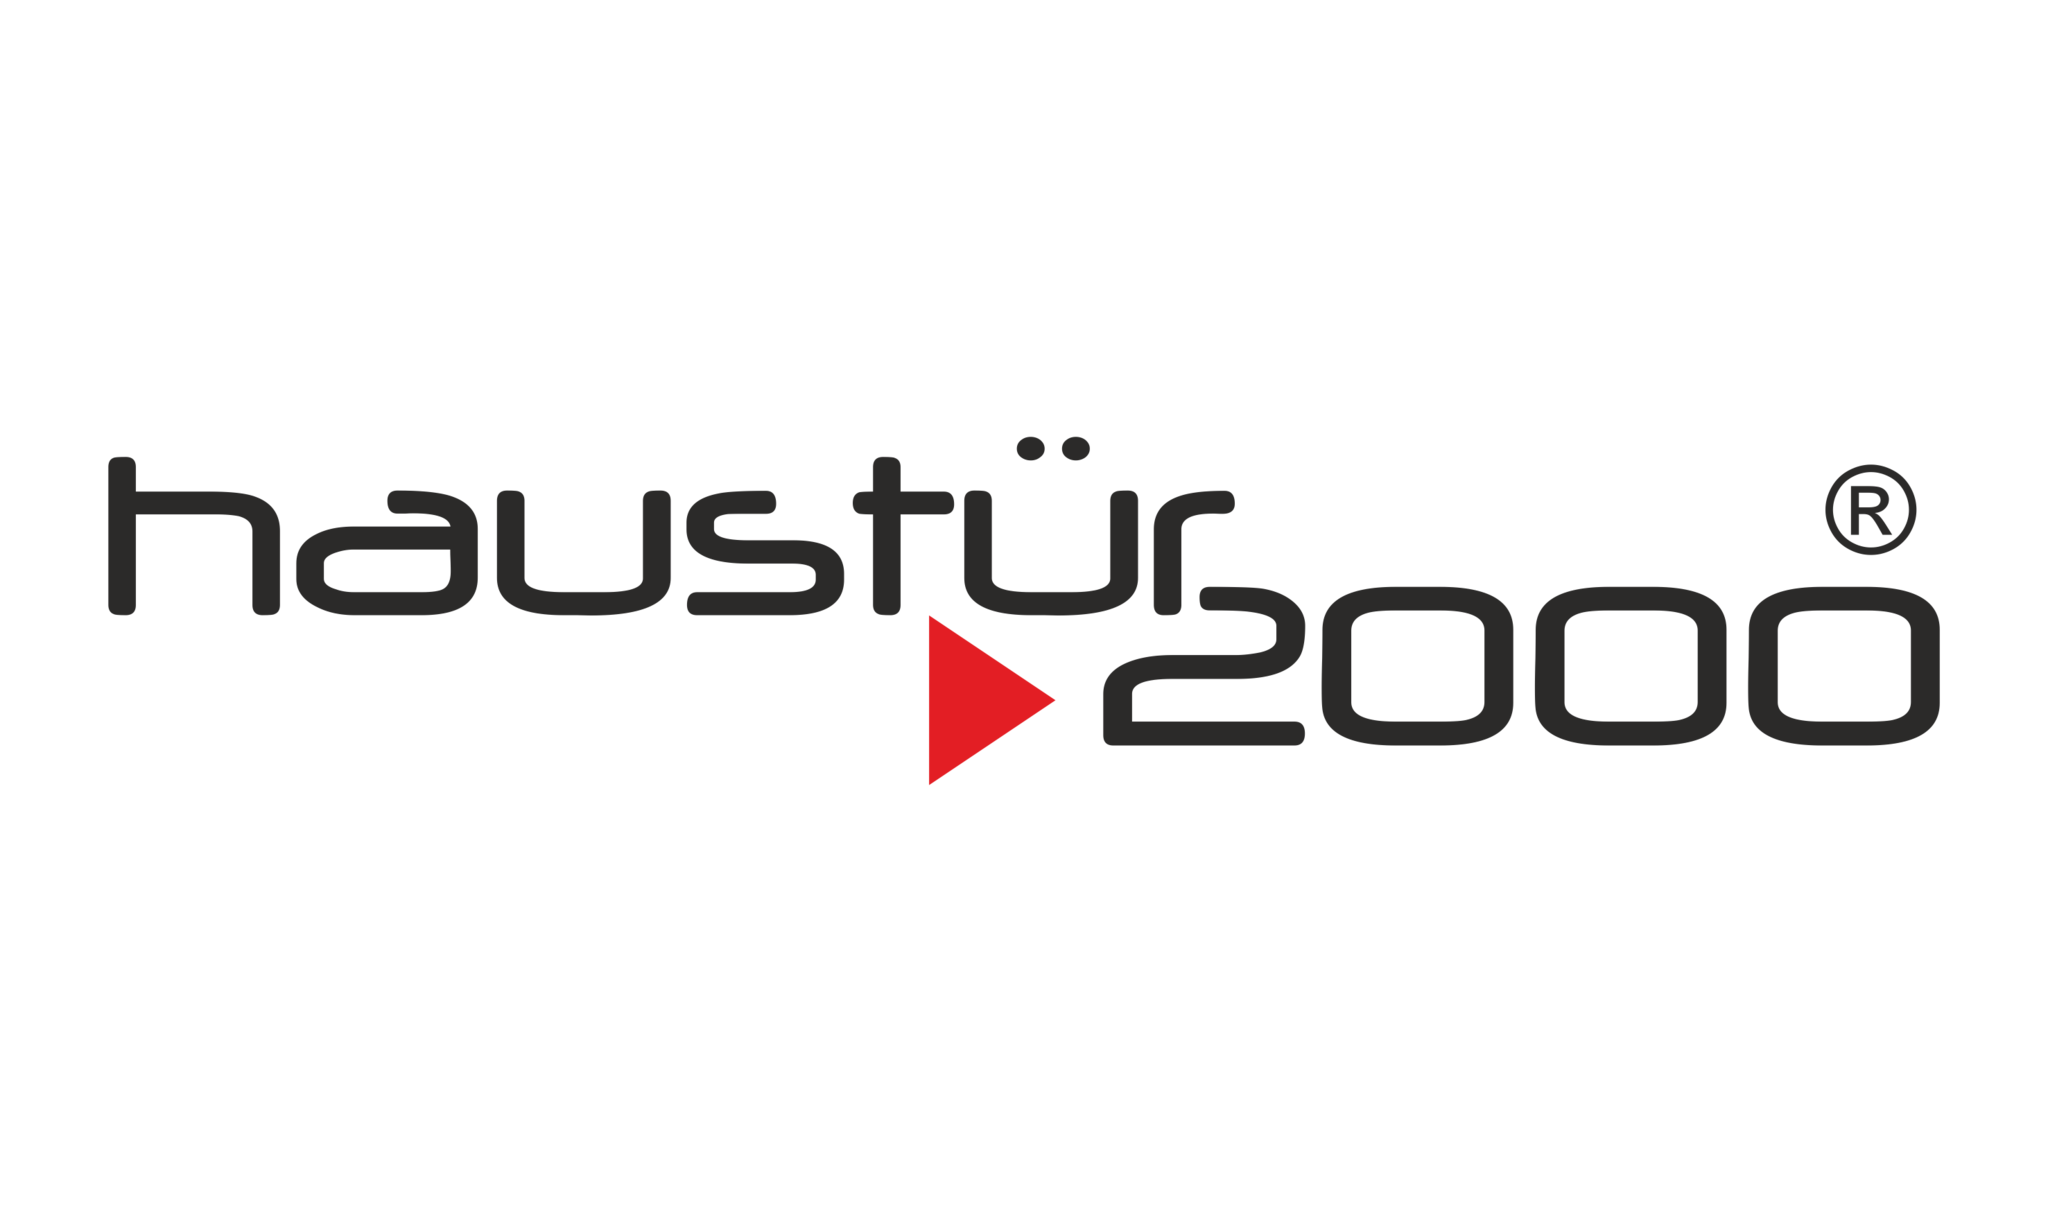 Haustür2000